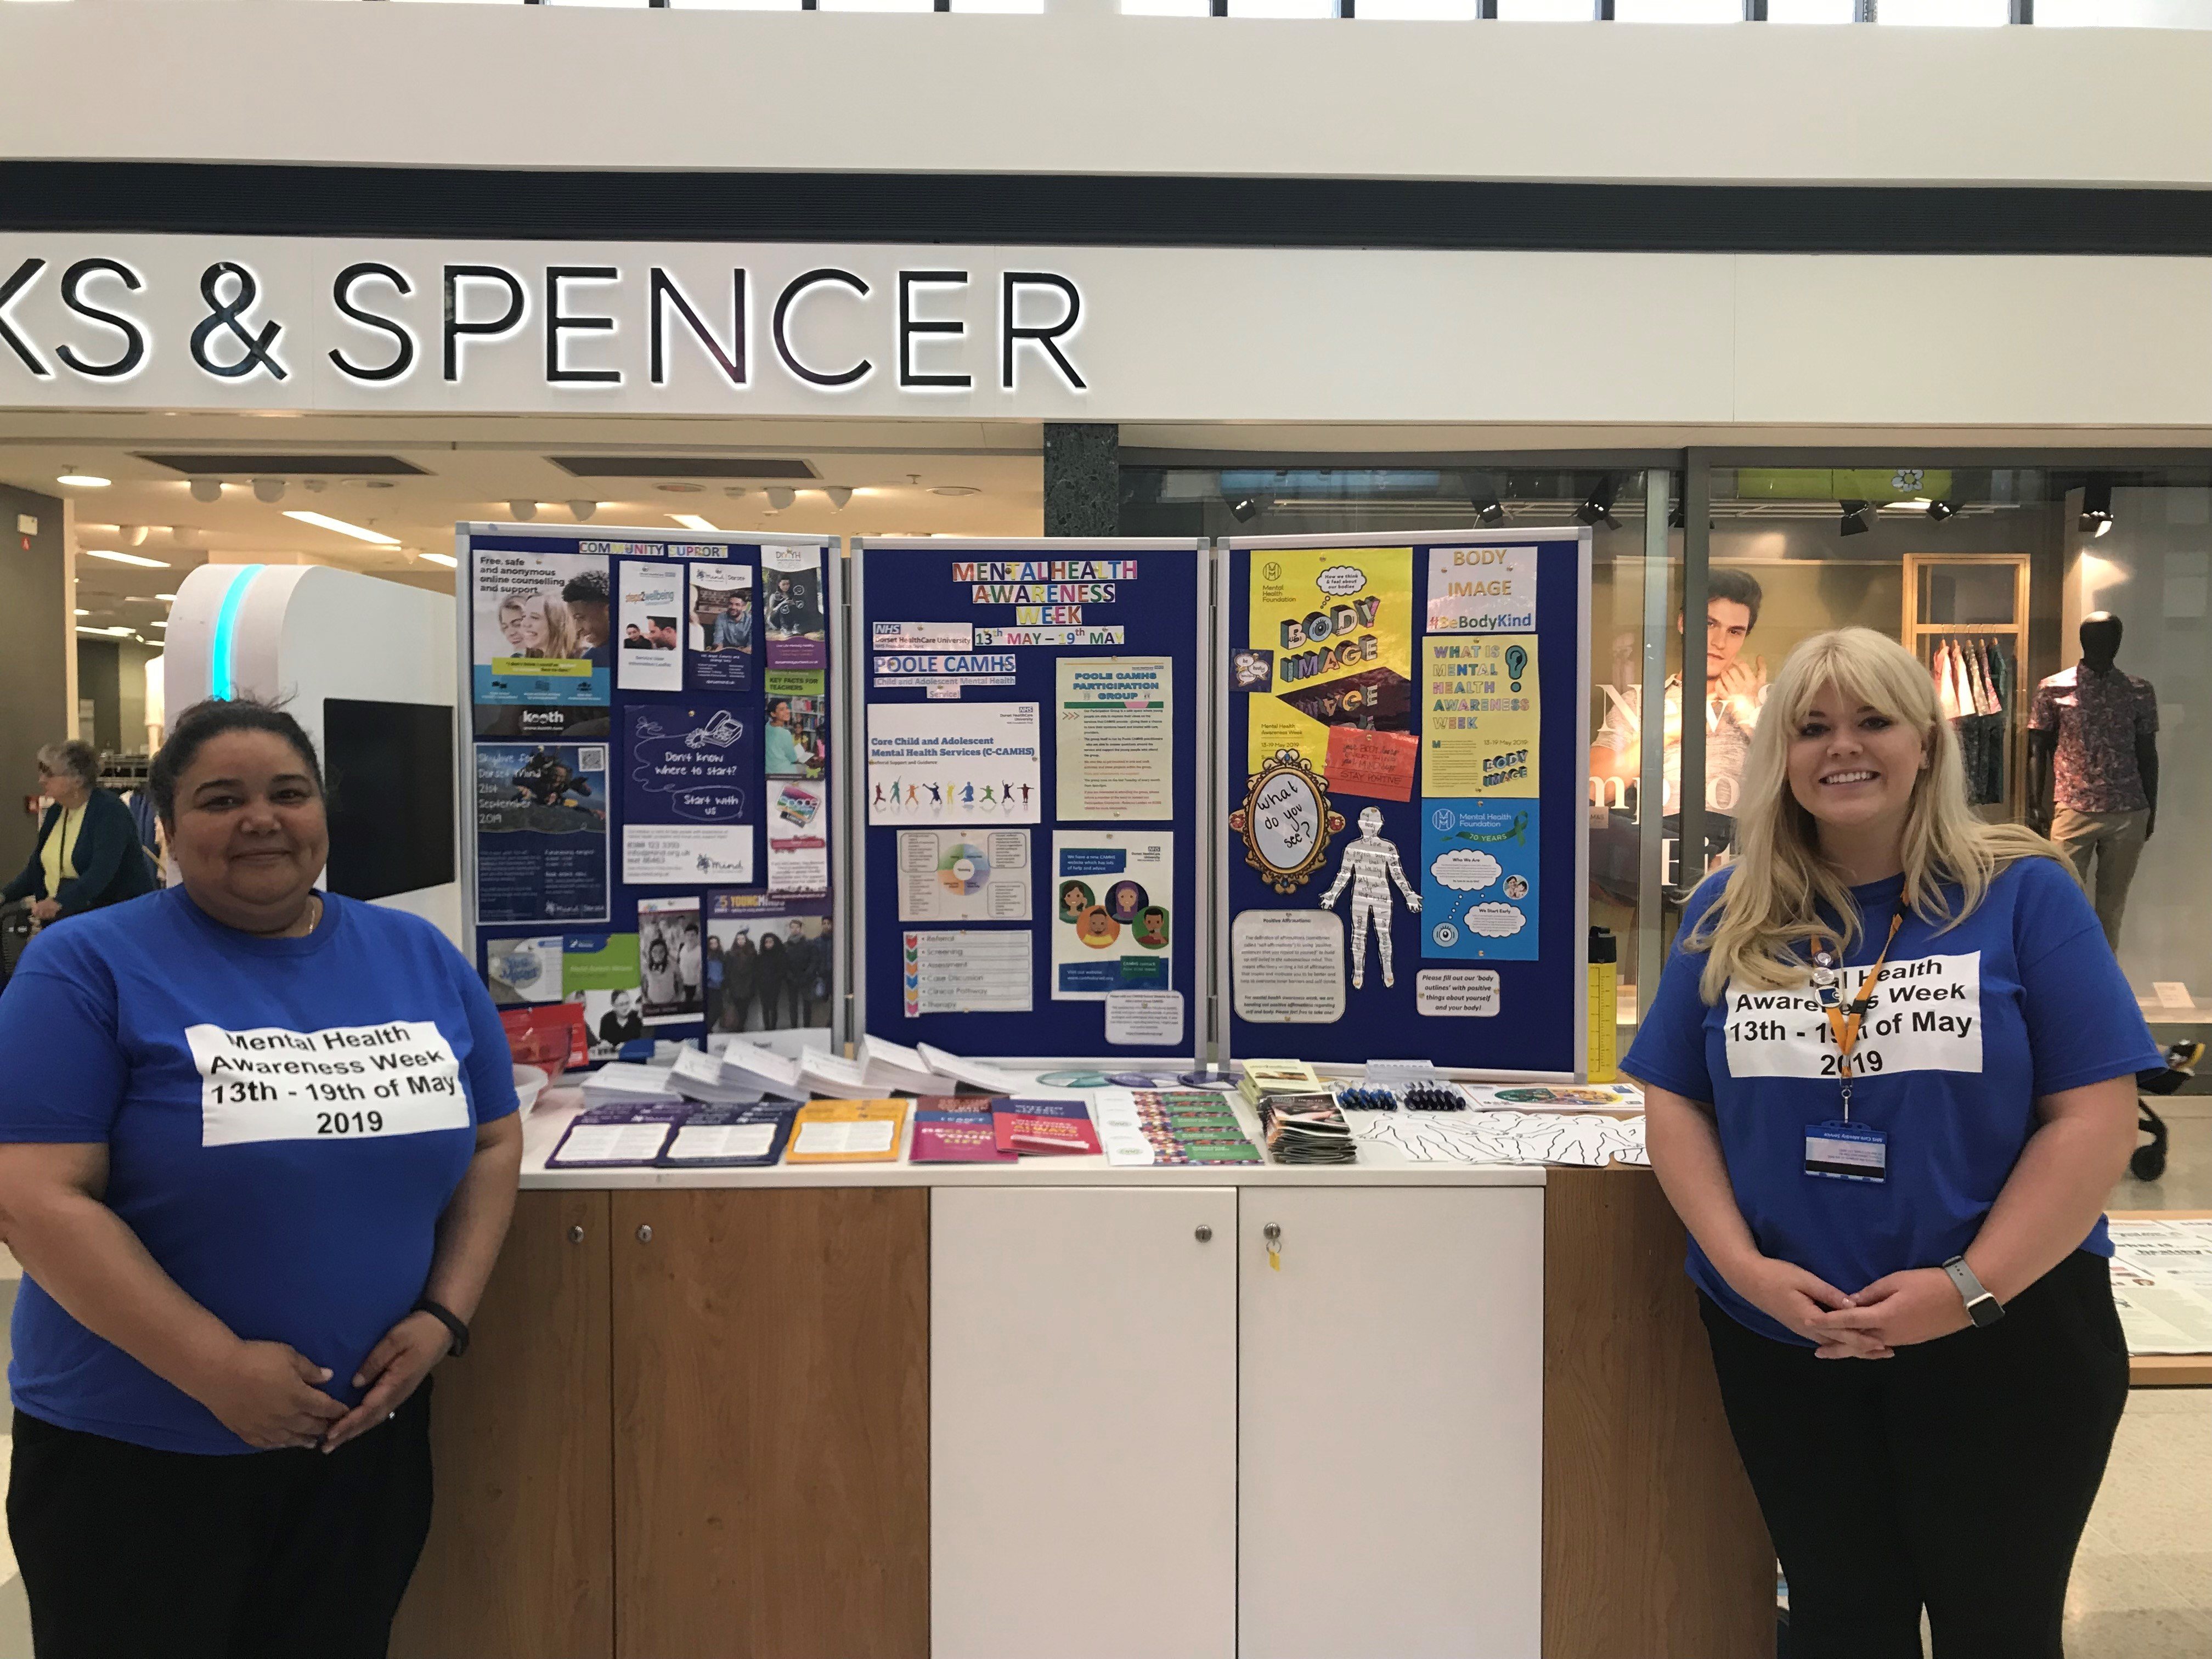 NHS at the Dolphin Shopping Centre for Mental Health Awareness Week